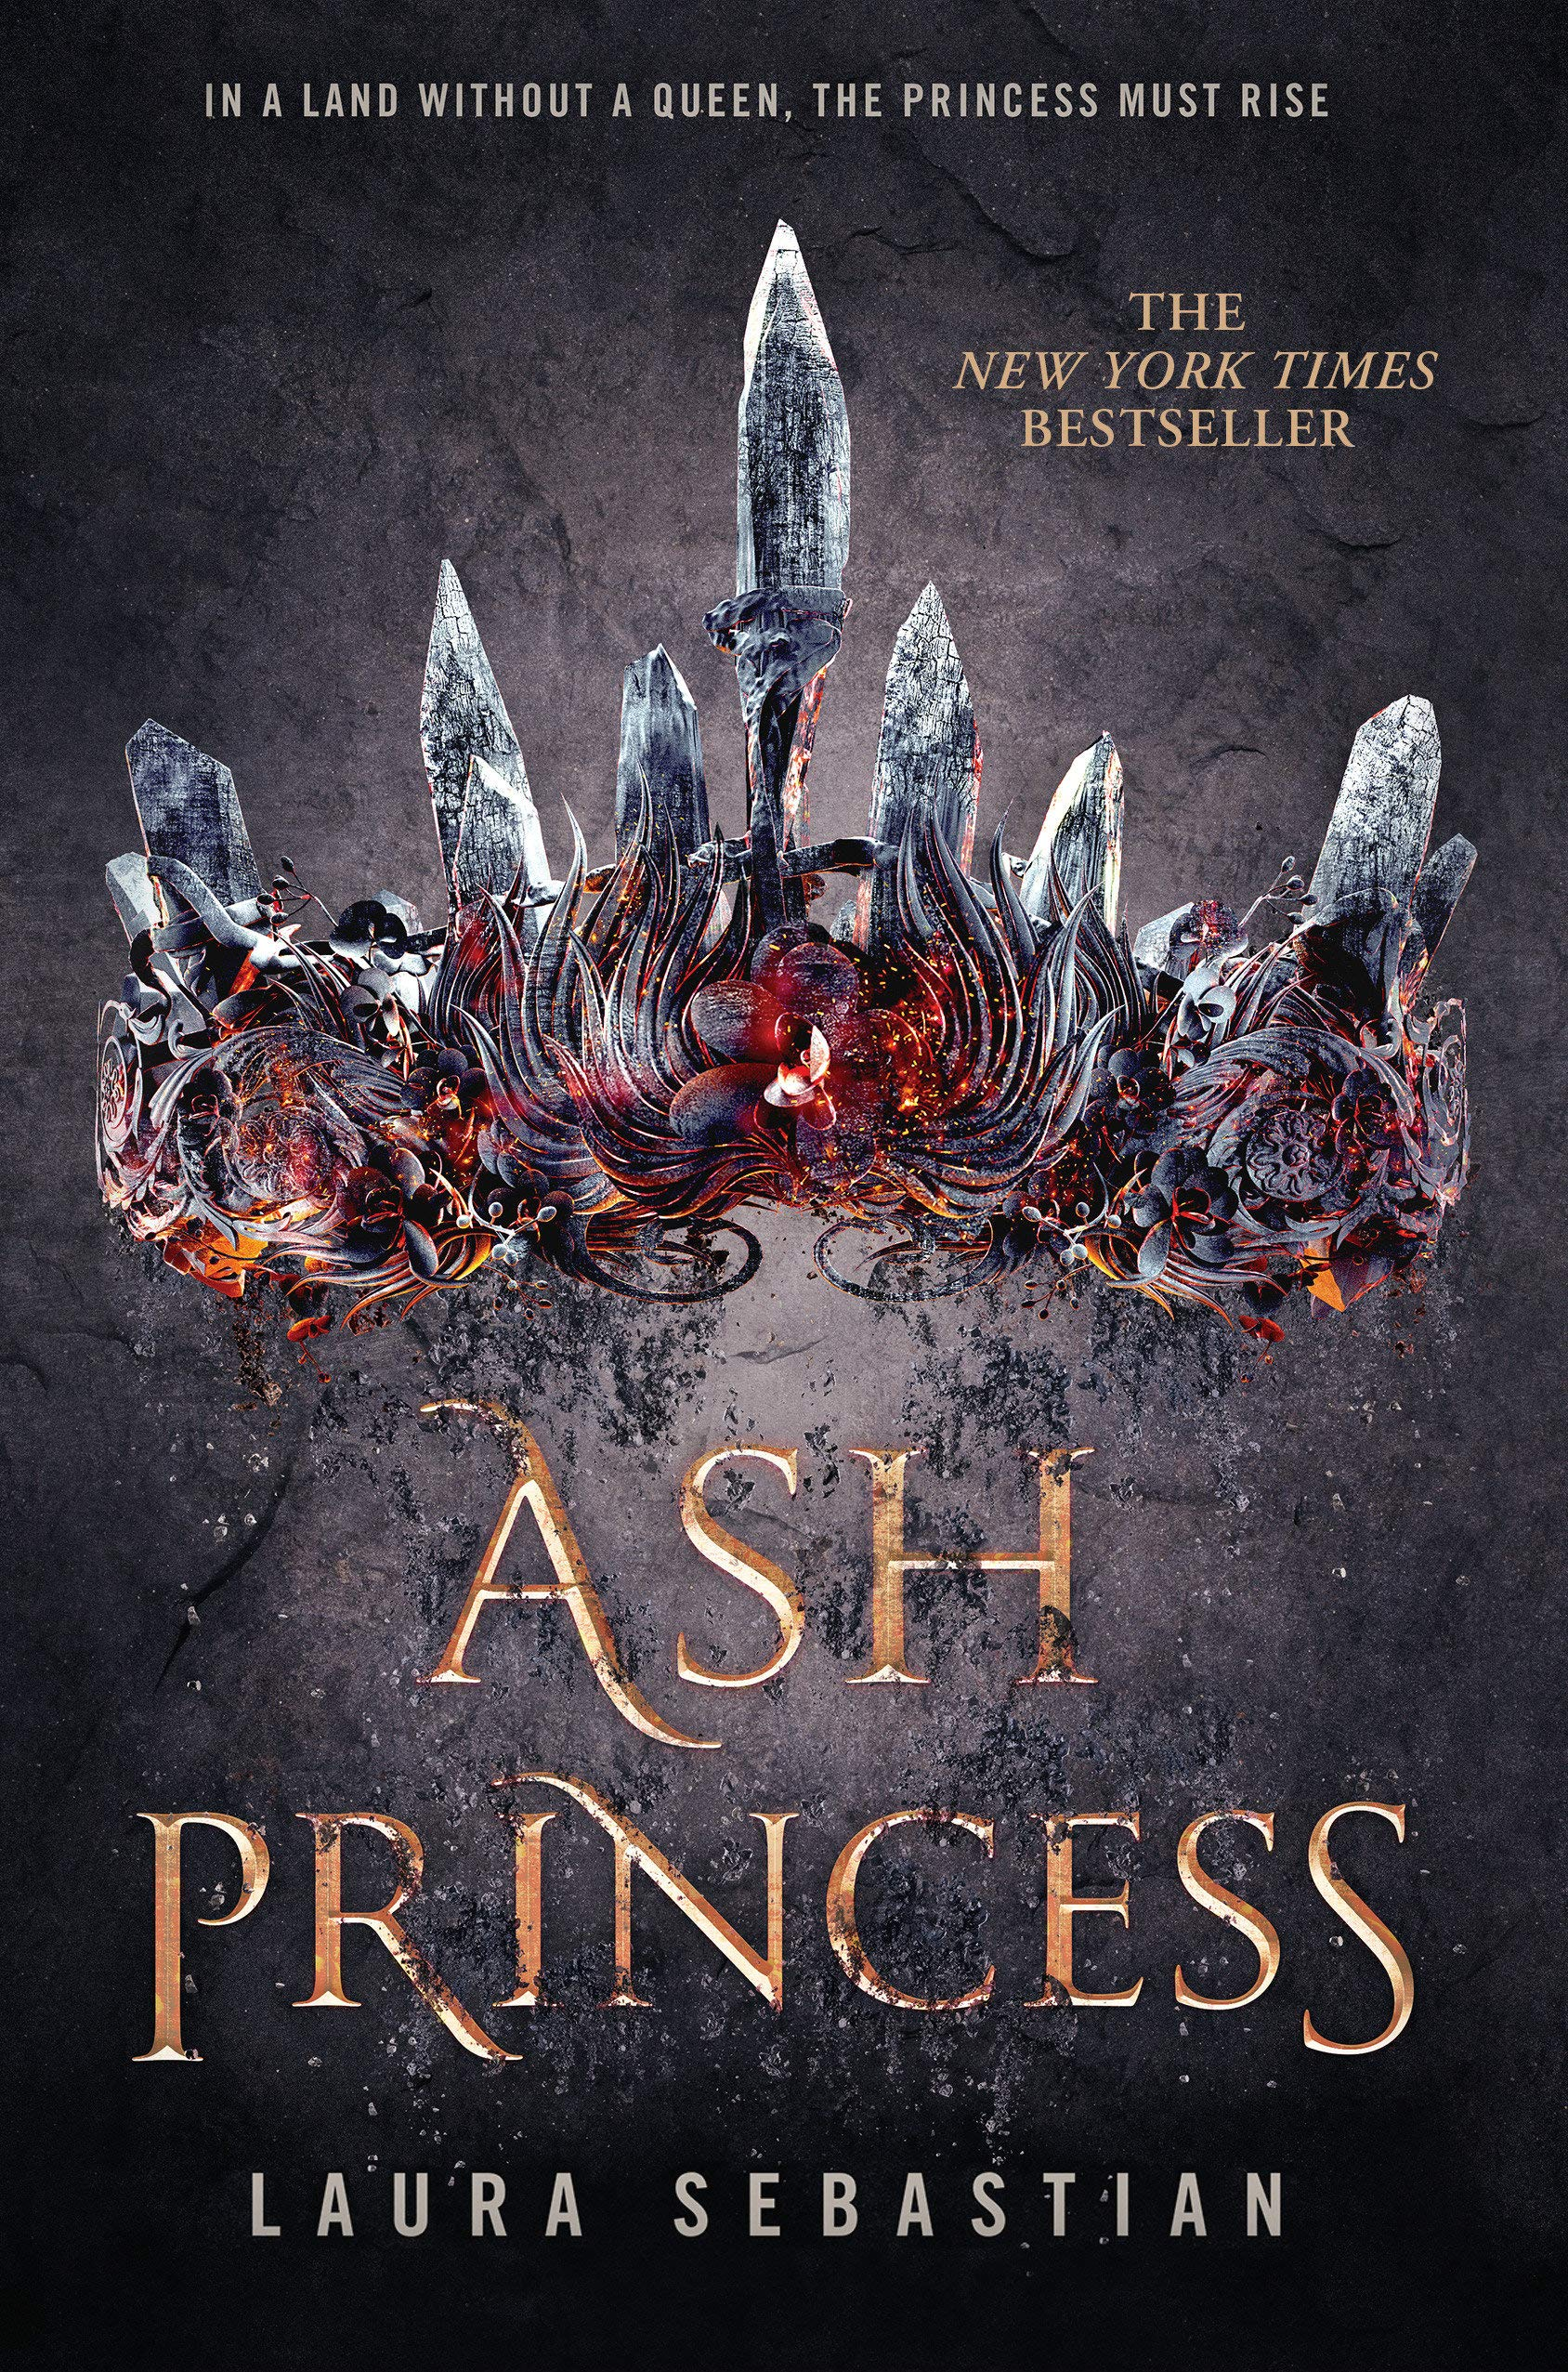 Amazon.com: Ash Princess (9780375978395): Sebastian, Laura: Books